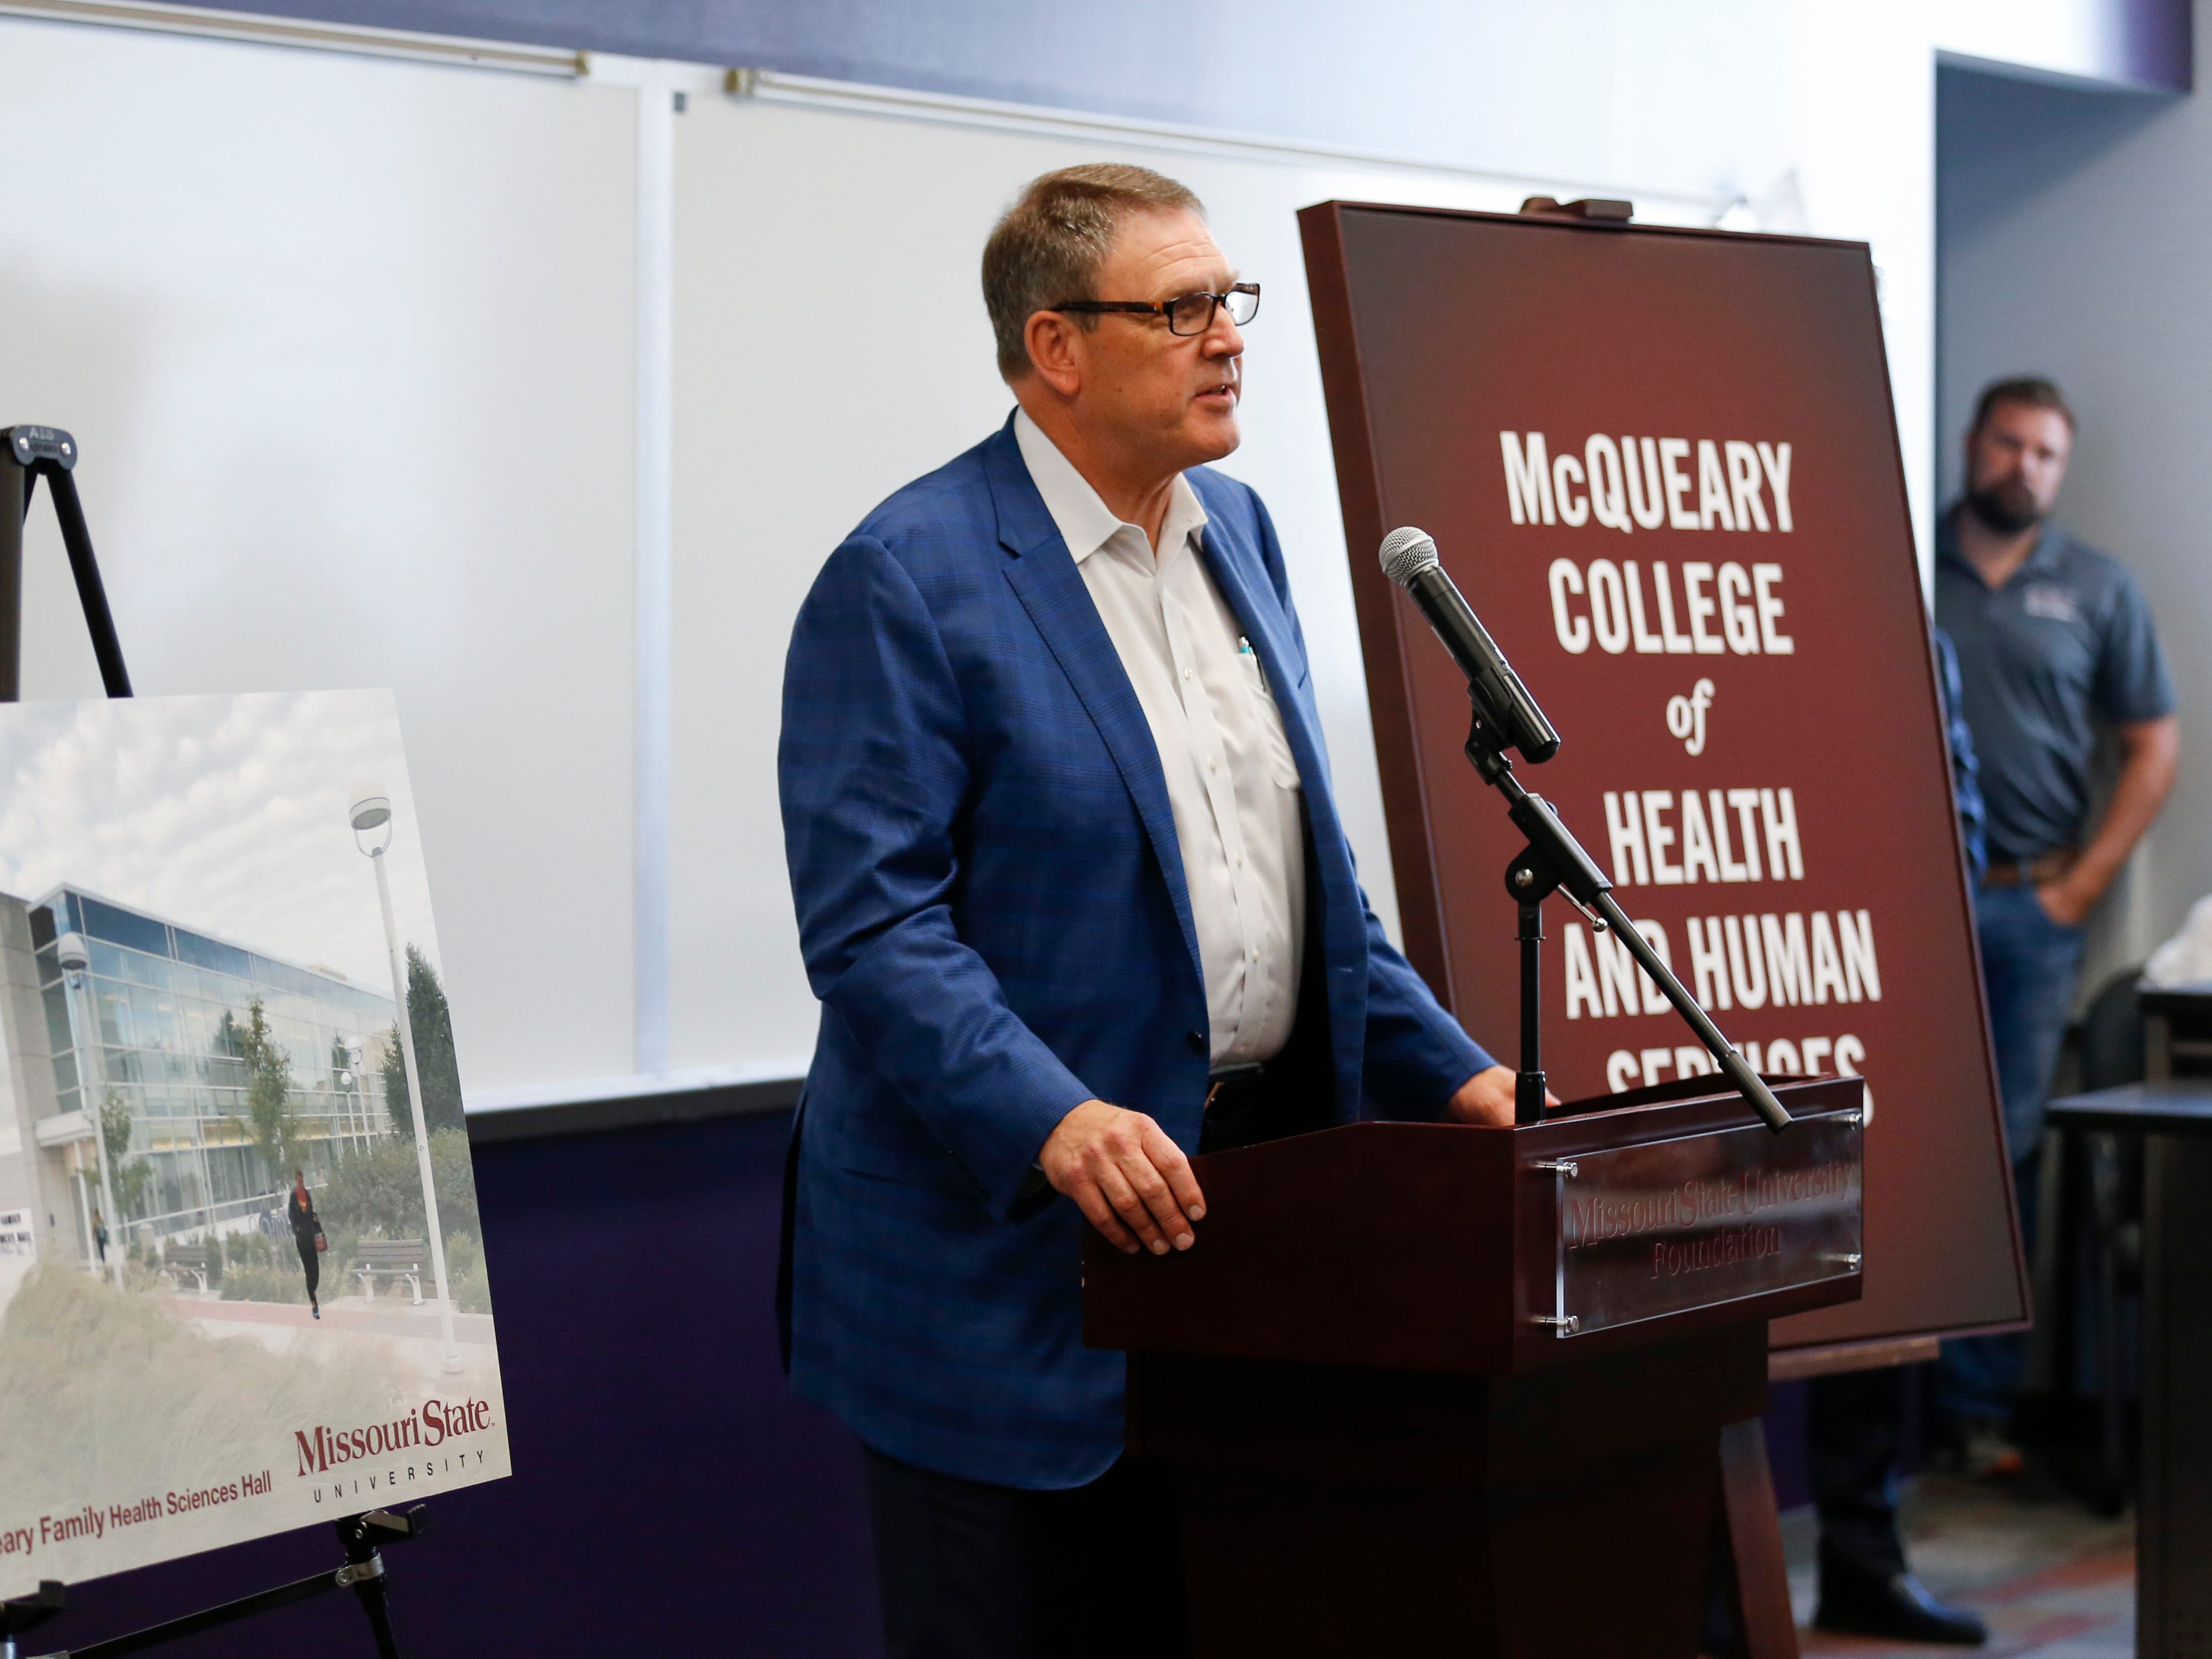 Fred McQueary speaks on behalf of the McQueary family after Missouri State University announced that it is renaming the College of Health and Human Services to the McQueary College of Health and Human Services on Tuesday Oct. 2, 2018.